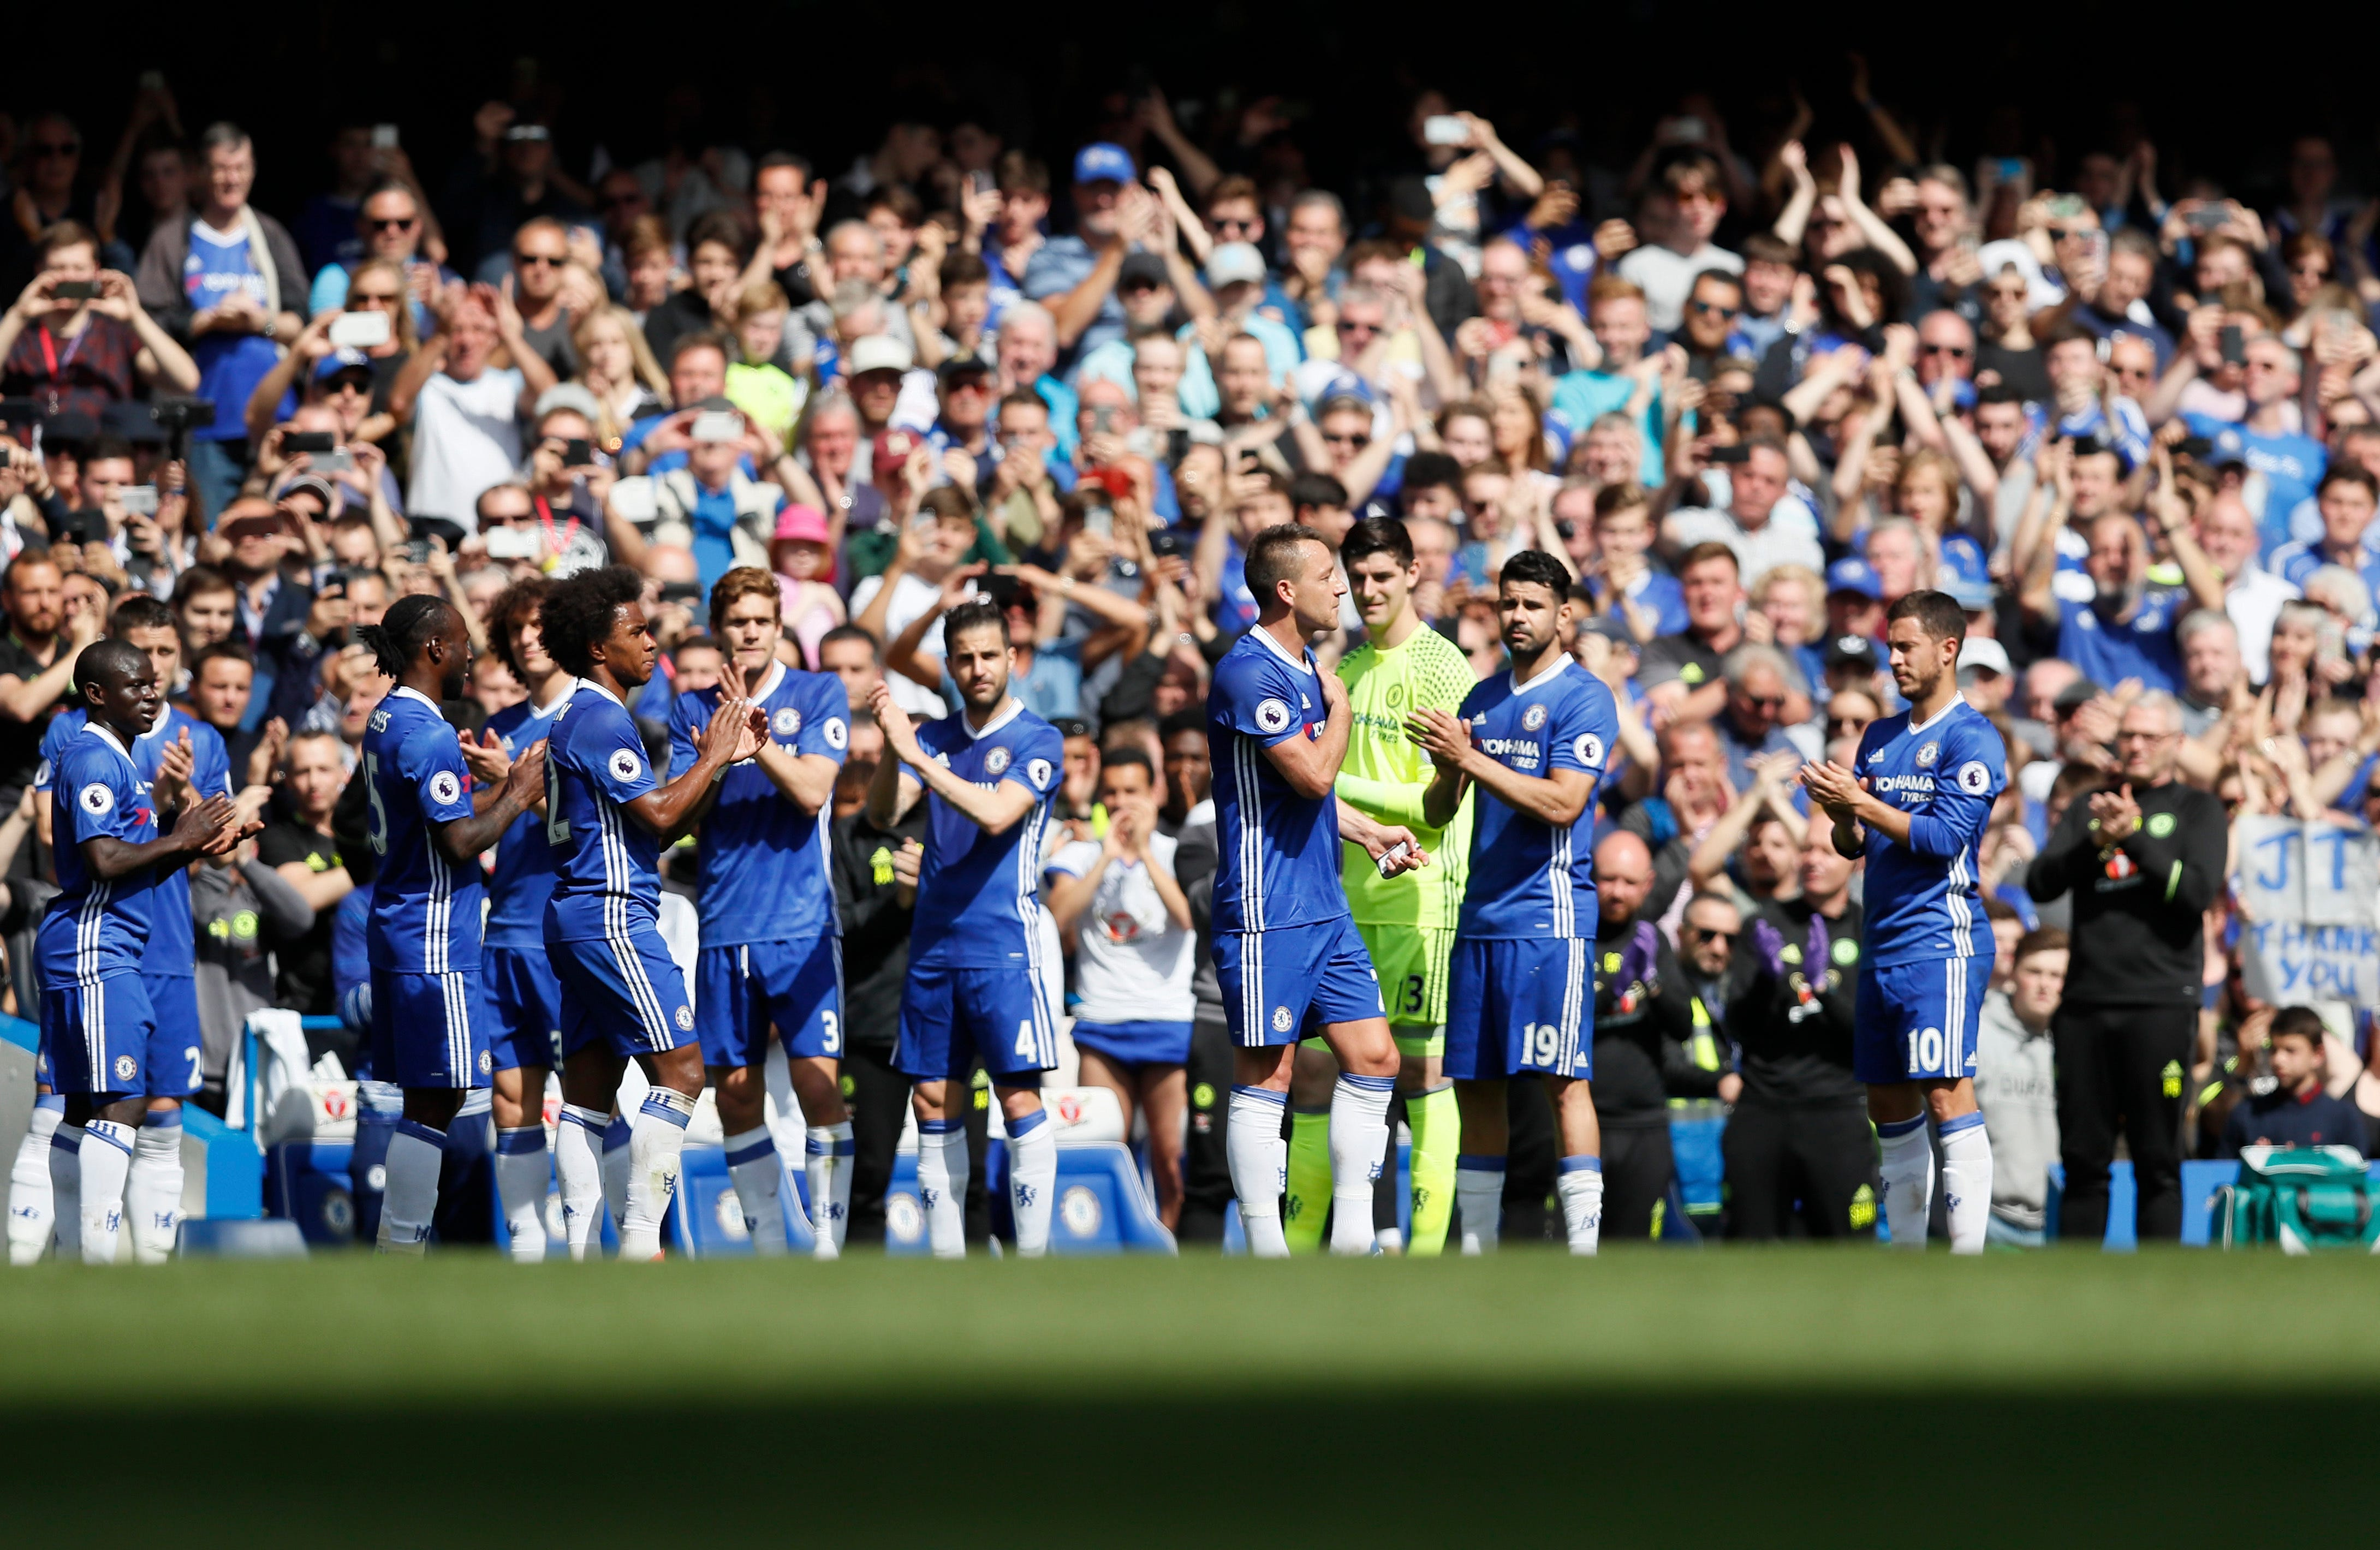 Terry given guard of honor in unusual farewell